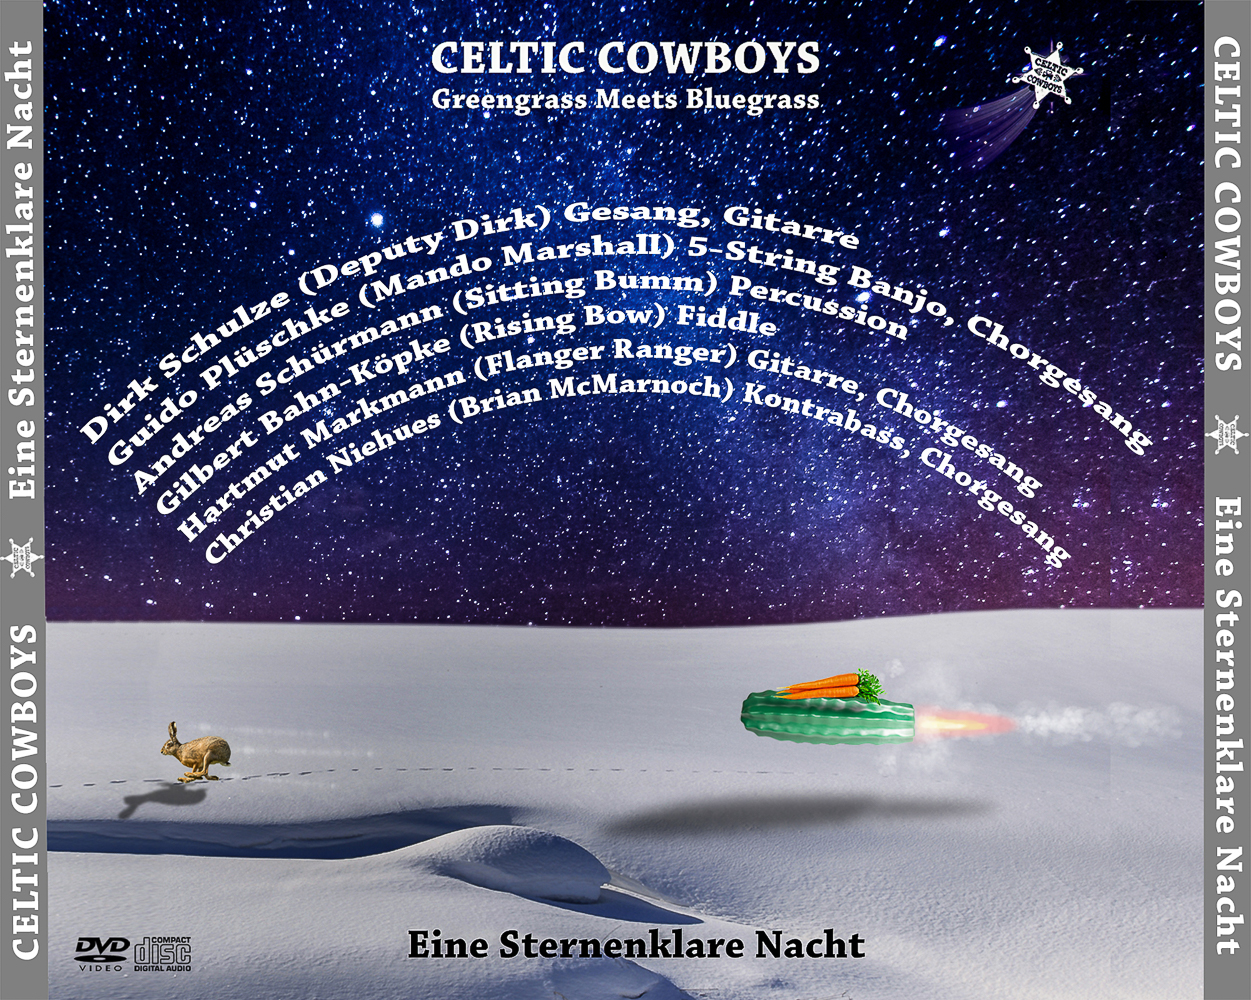 Celtic Cowboys_075